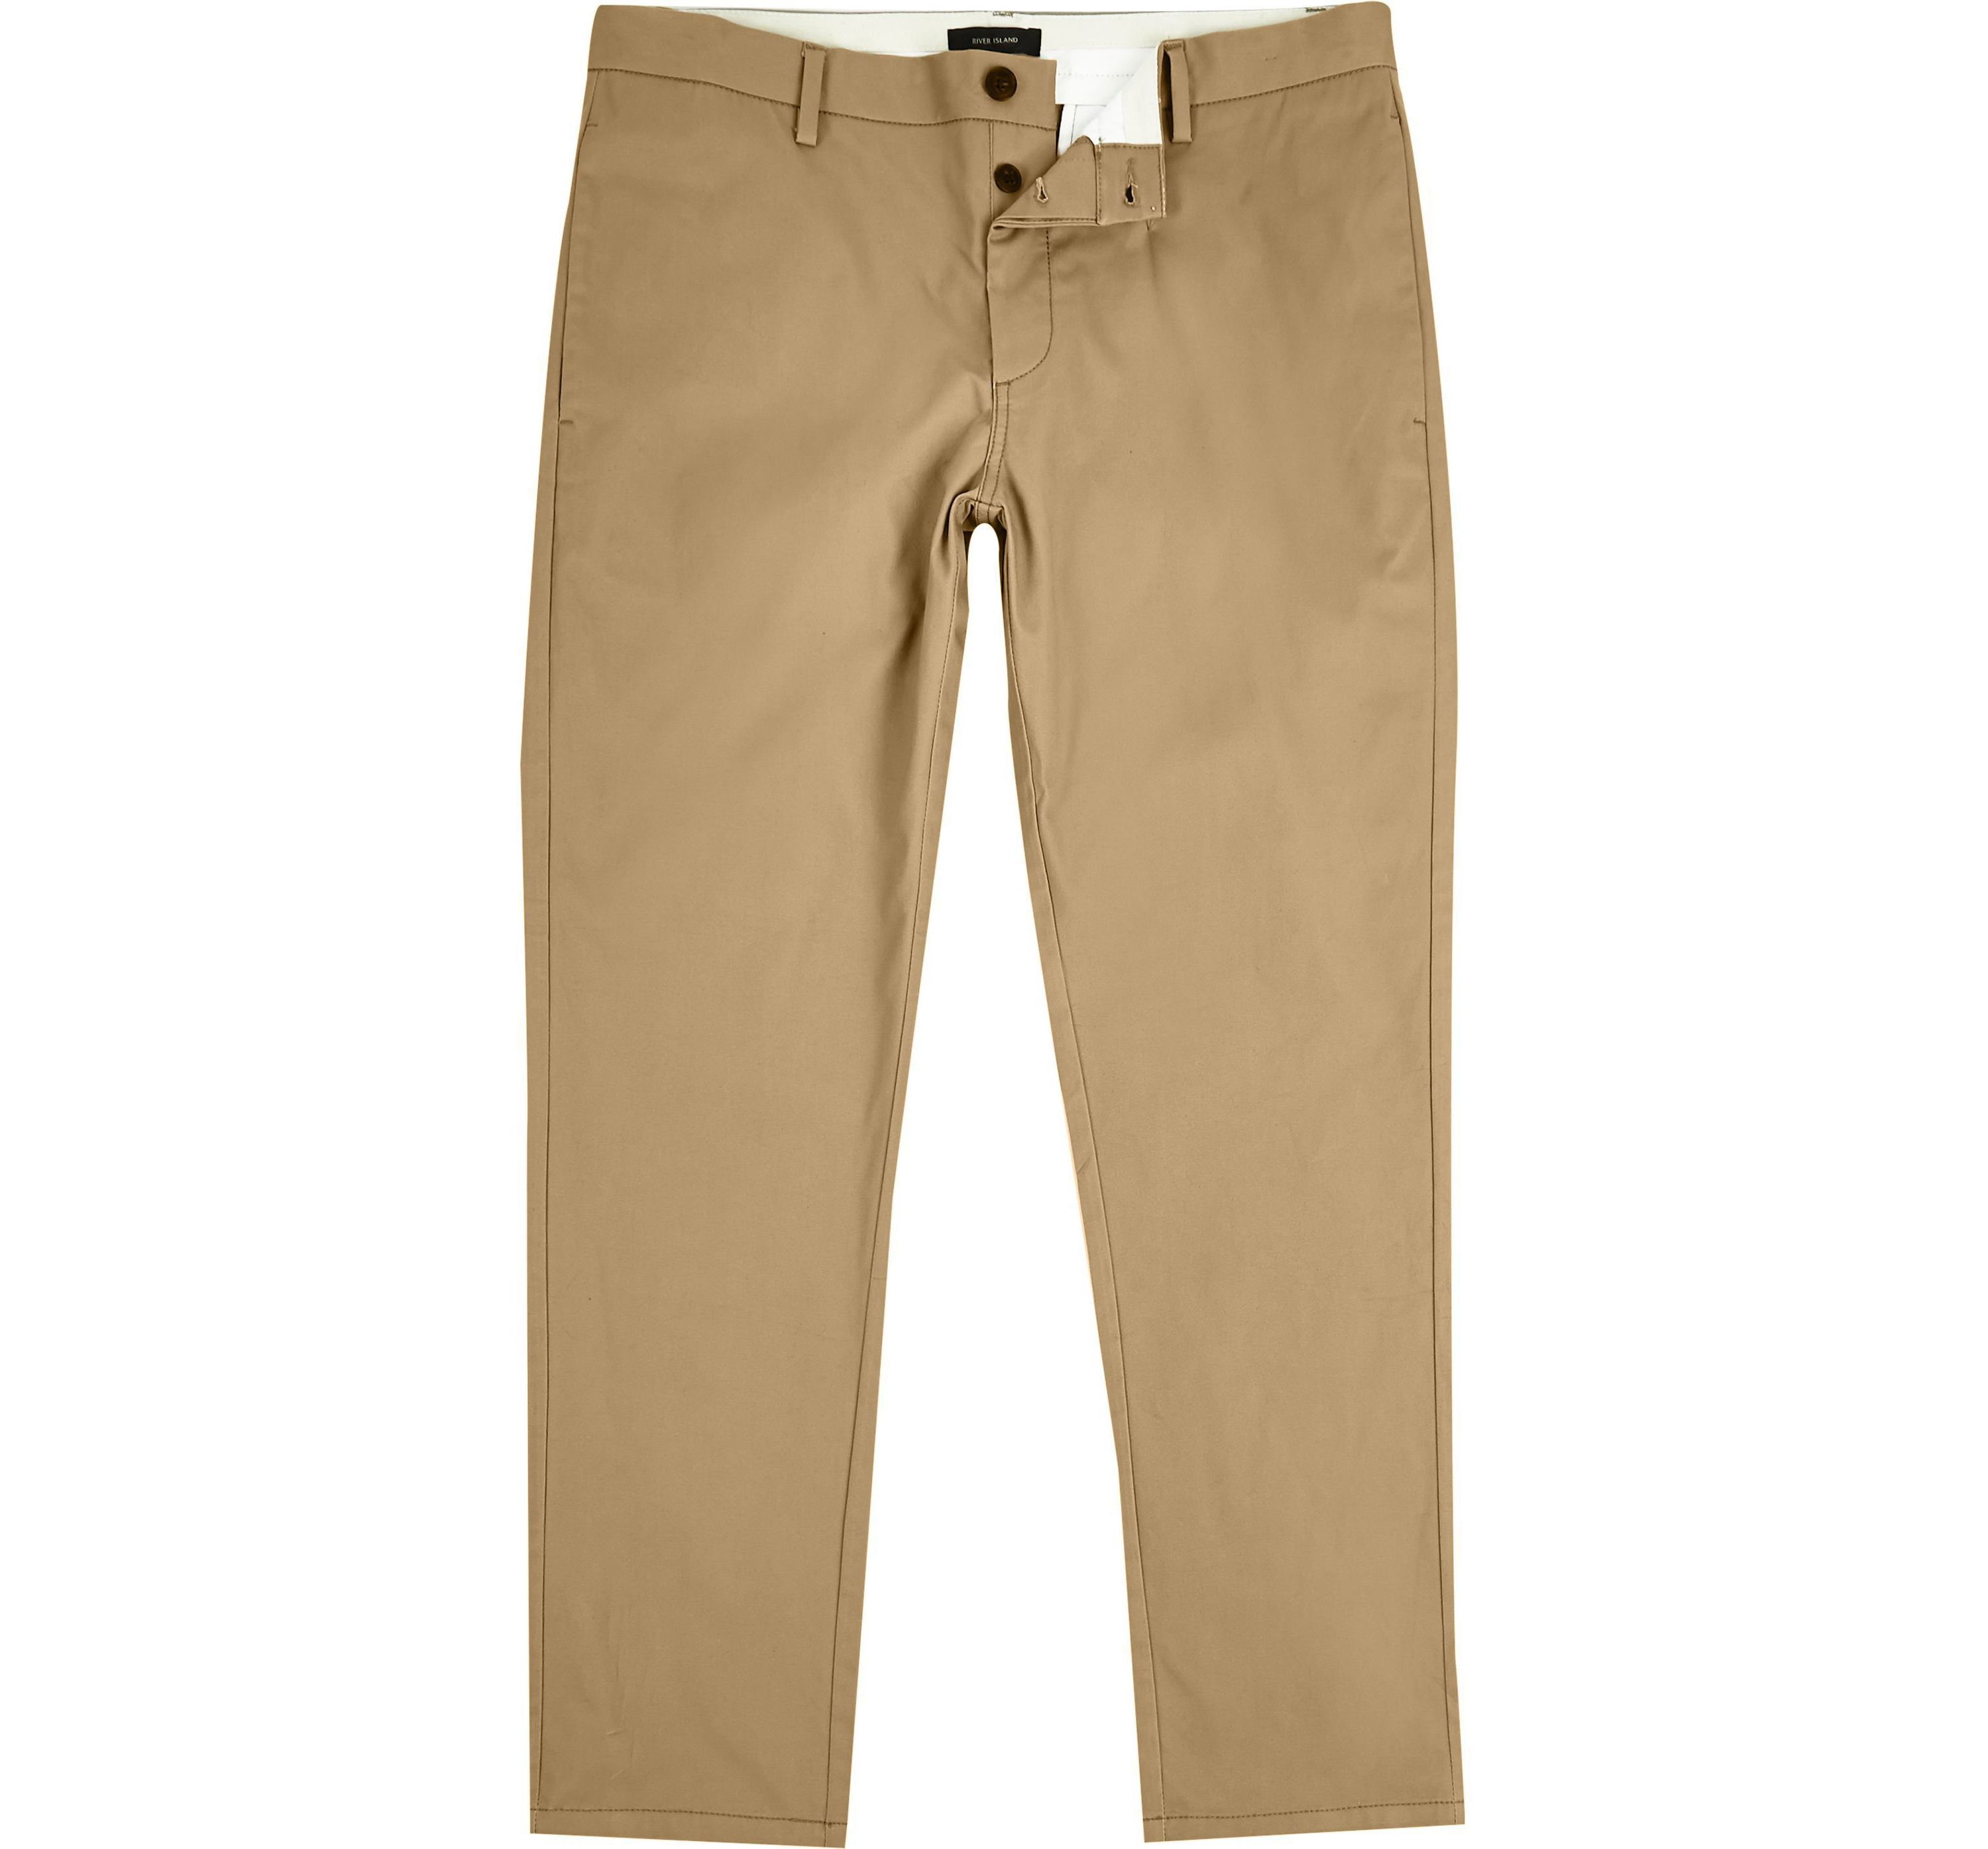 River Island Mens Tan stretch slim fit chino trousers